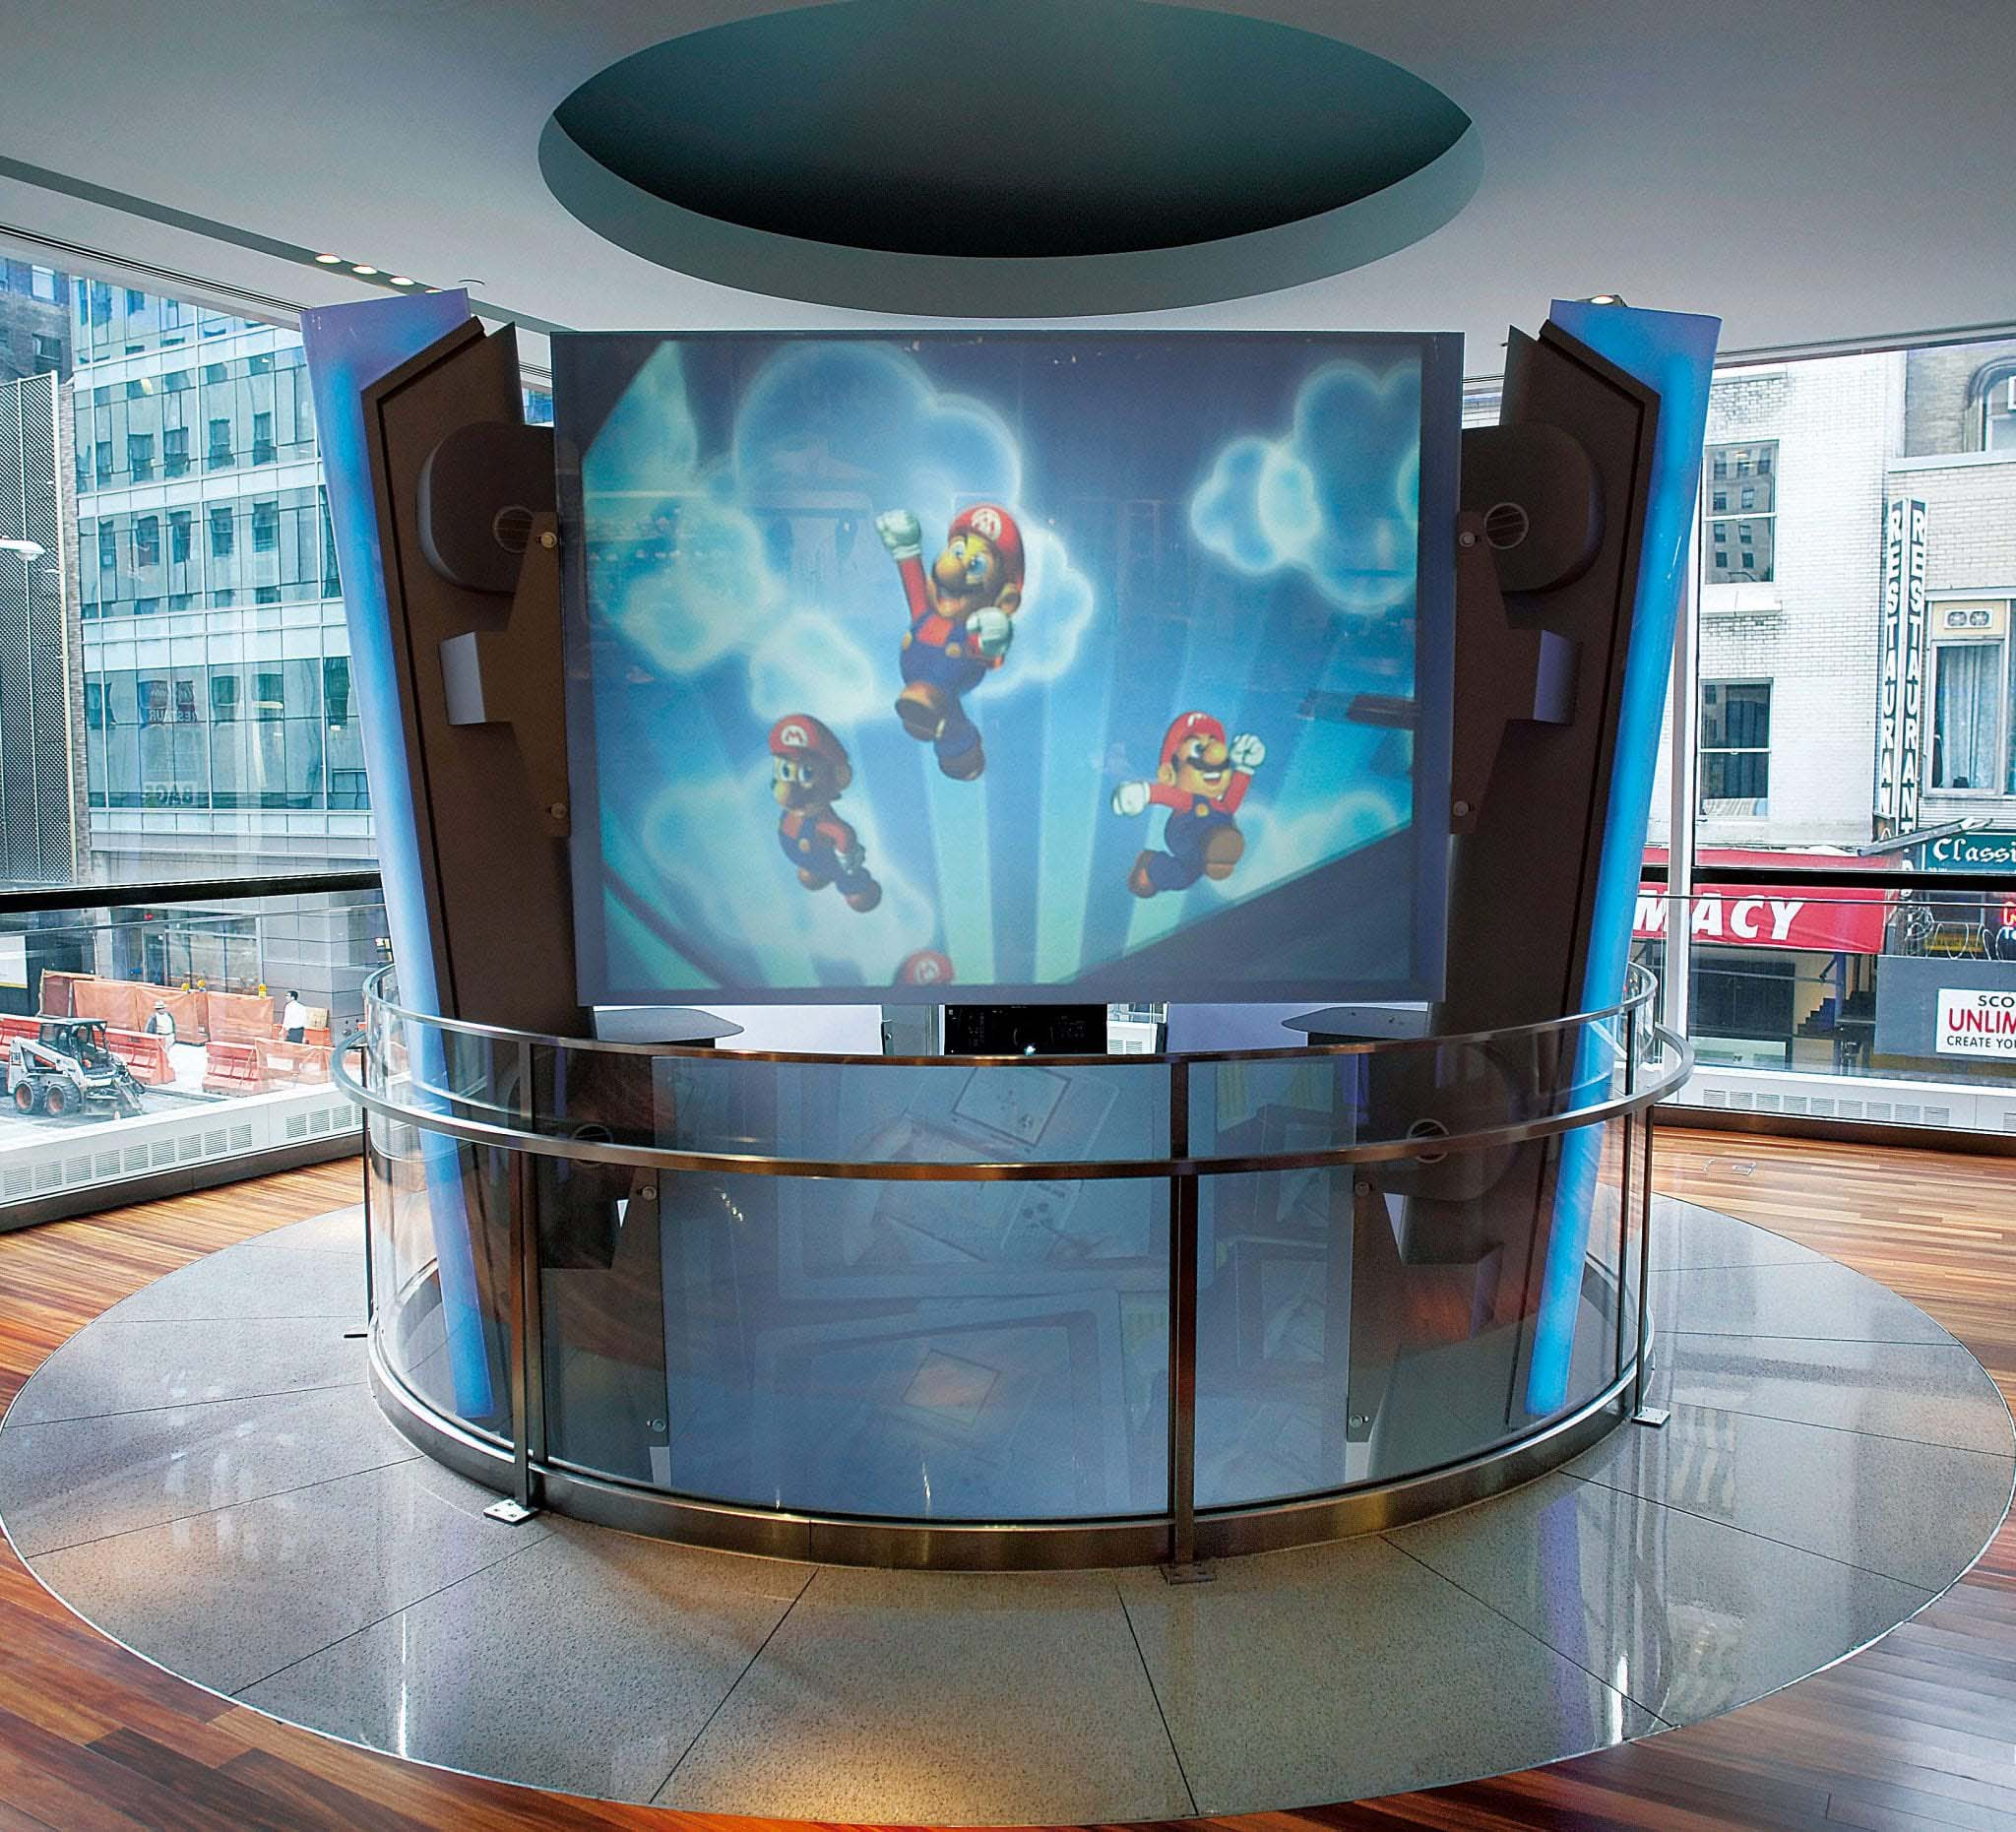 Nintendo world store - New York city, USA Slide